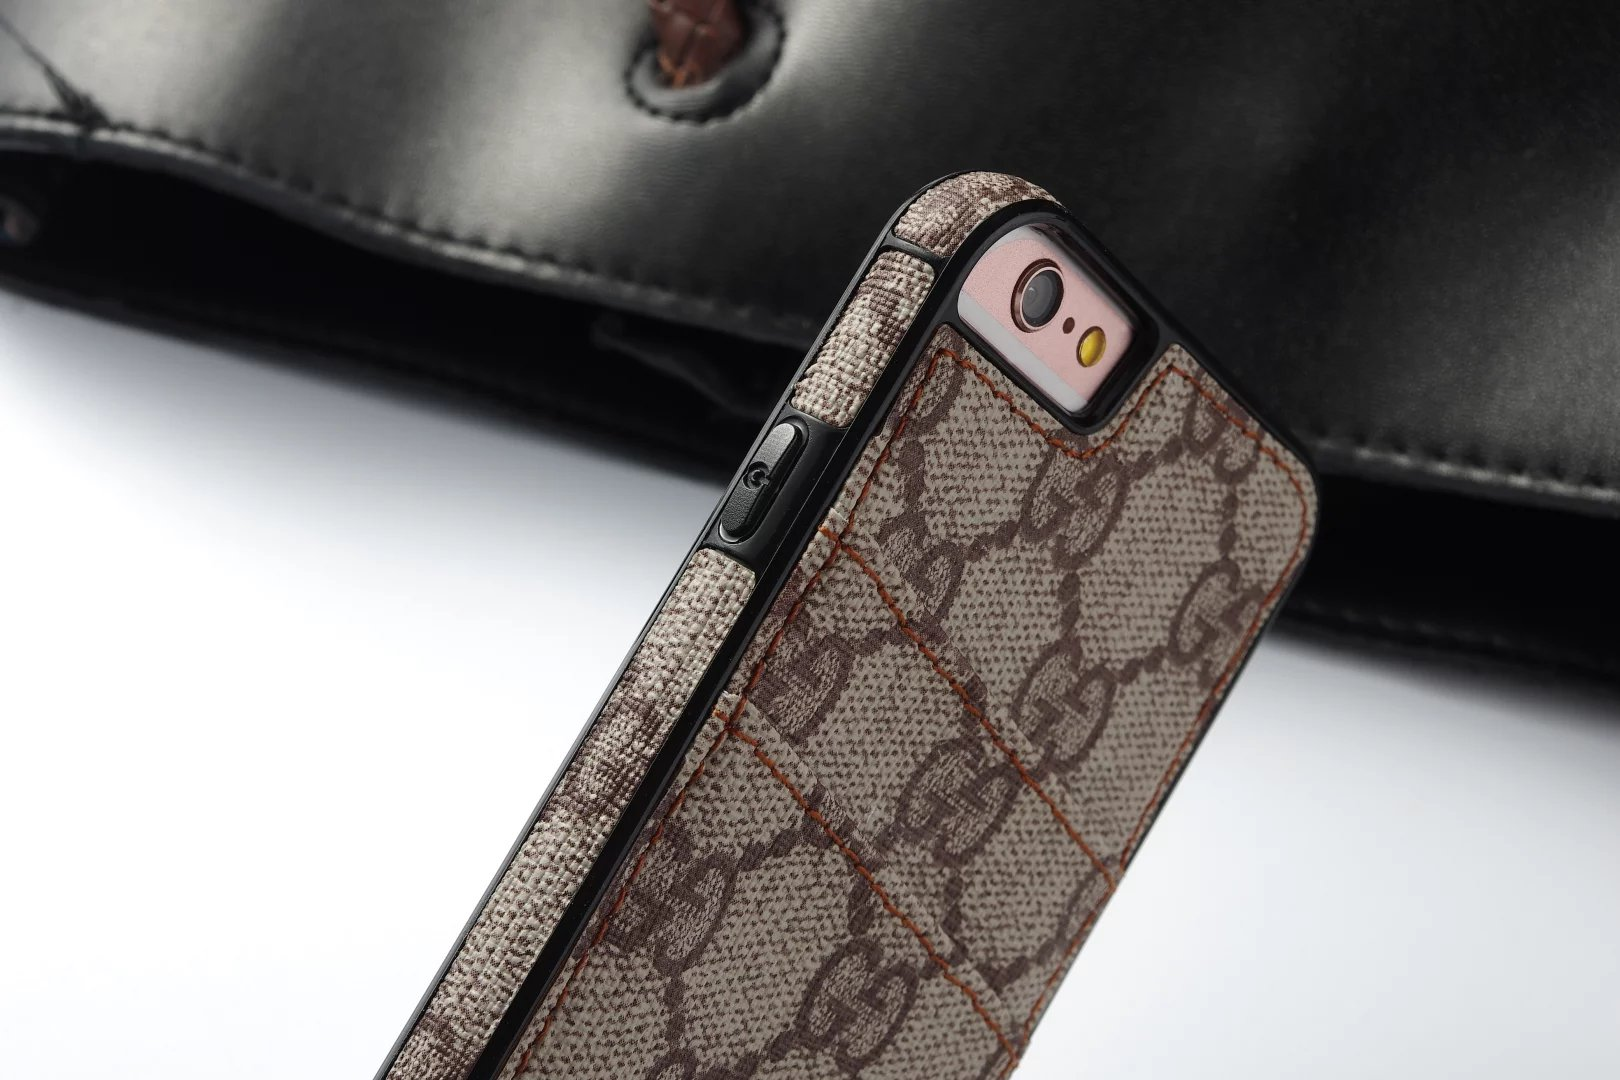 iphone schutzhülle iphone hülle mit eigenem foto Louis Vuitton iphone6 plus hülle virenschutz iphone apple store zubehör apple 6 hülle iphone 6 Plus a6 hwarz iphpne 6 iphone news